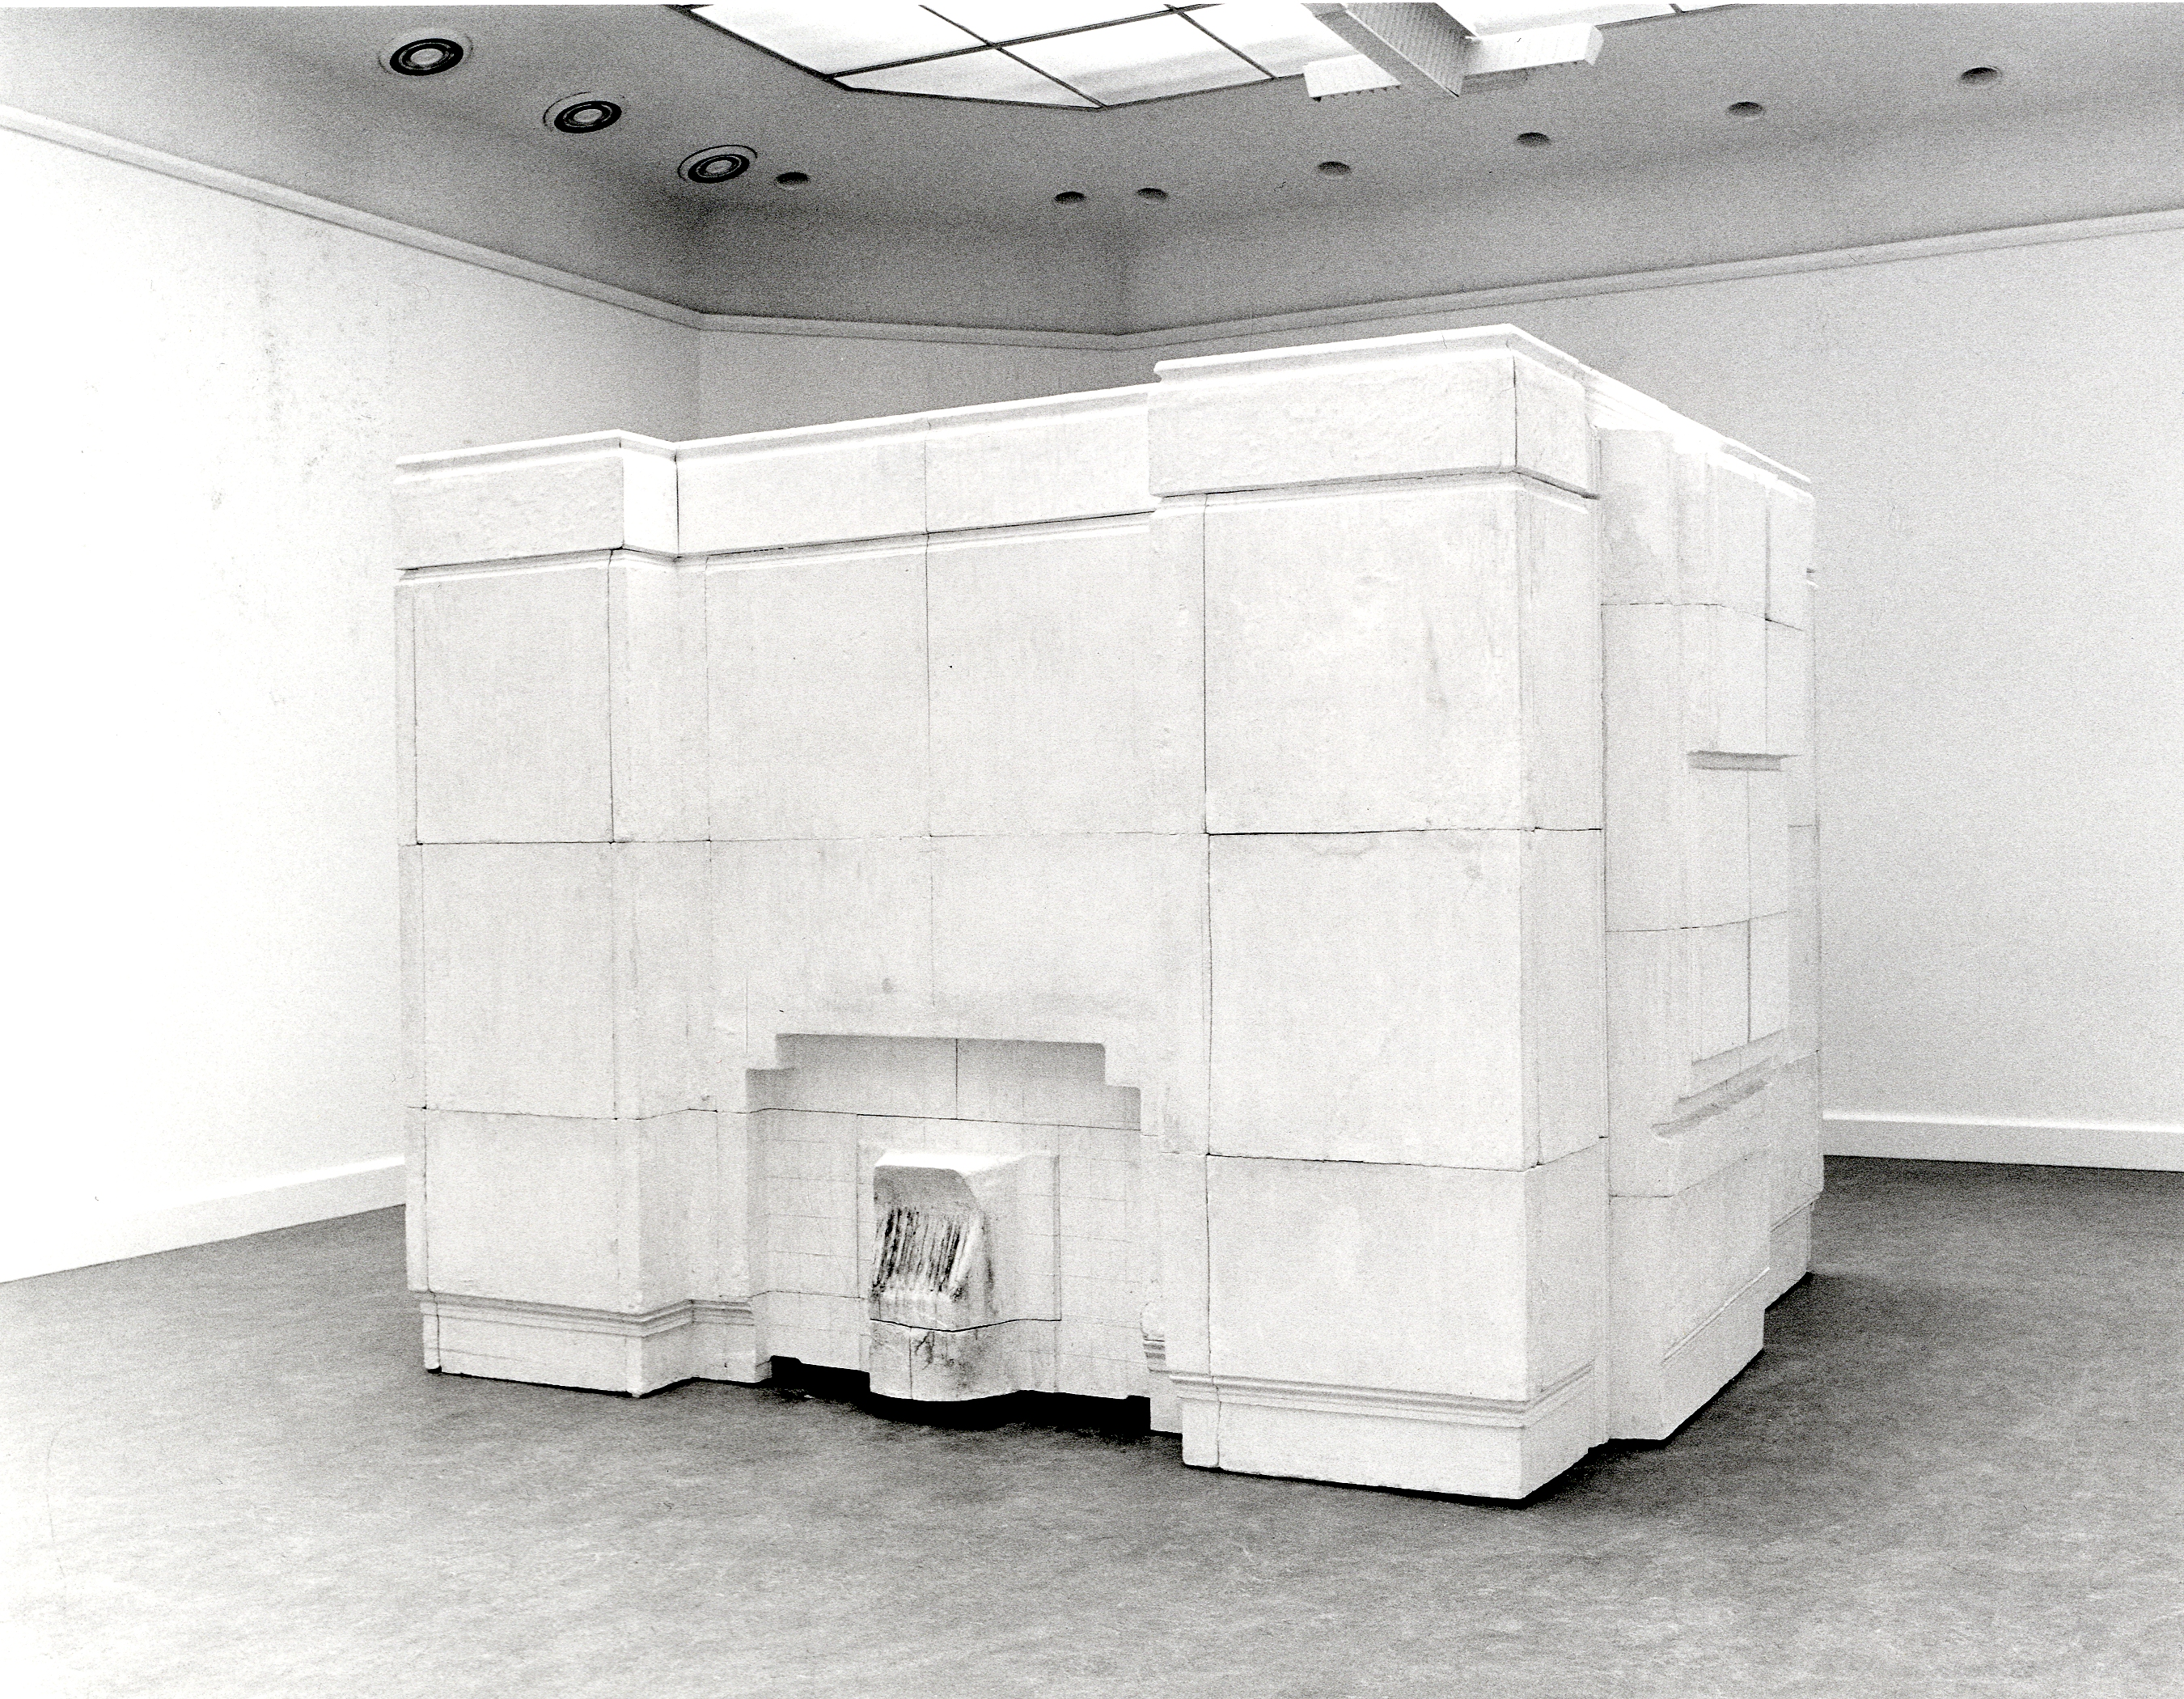 Rachel Whiteread : Sculpturen 1990-1992